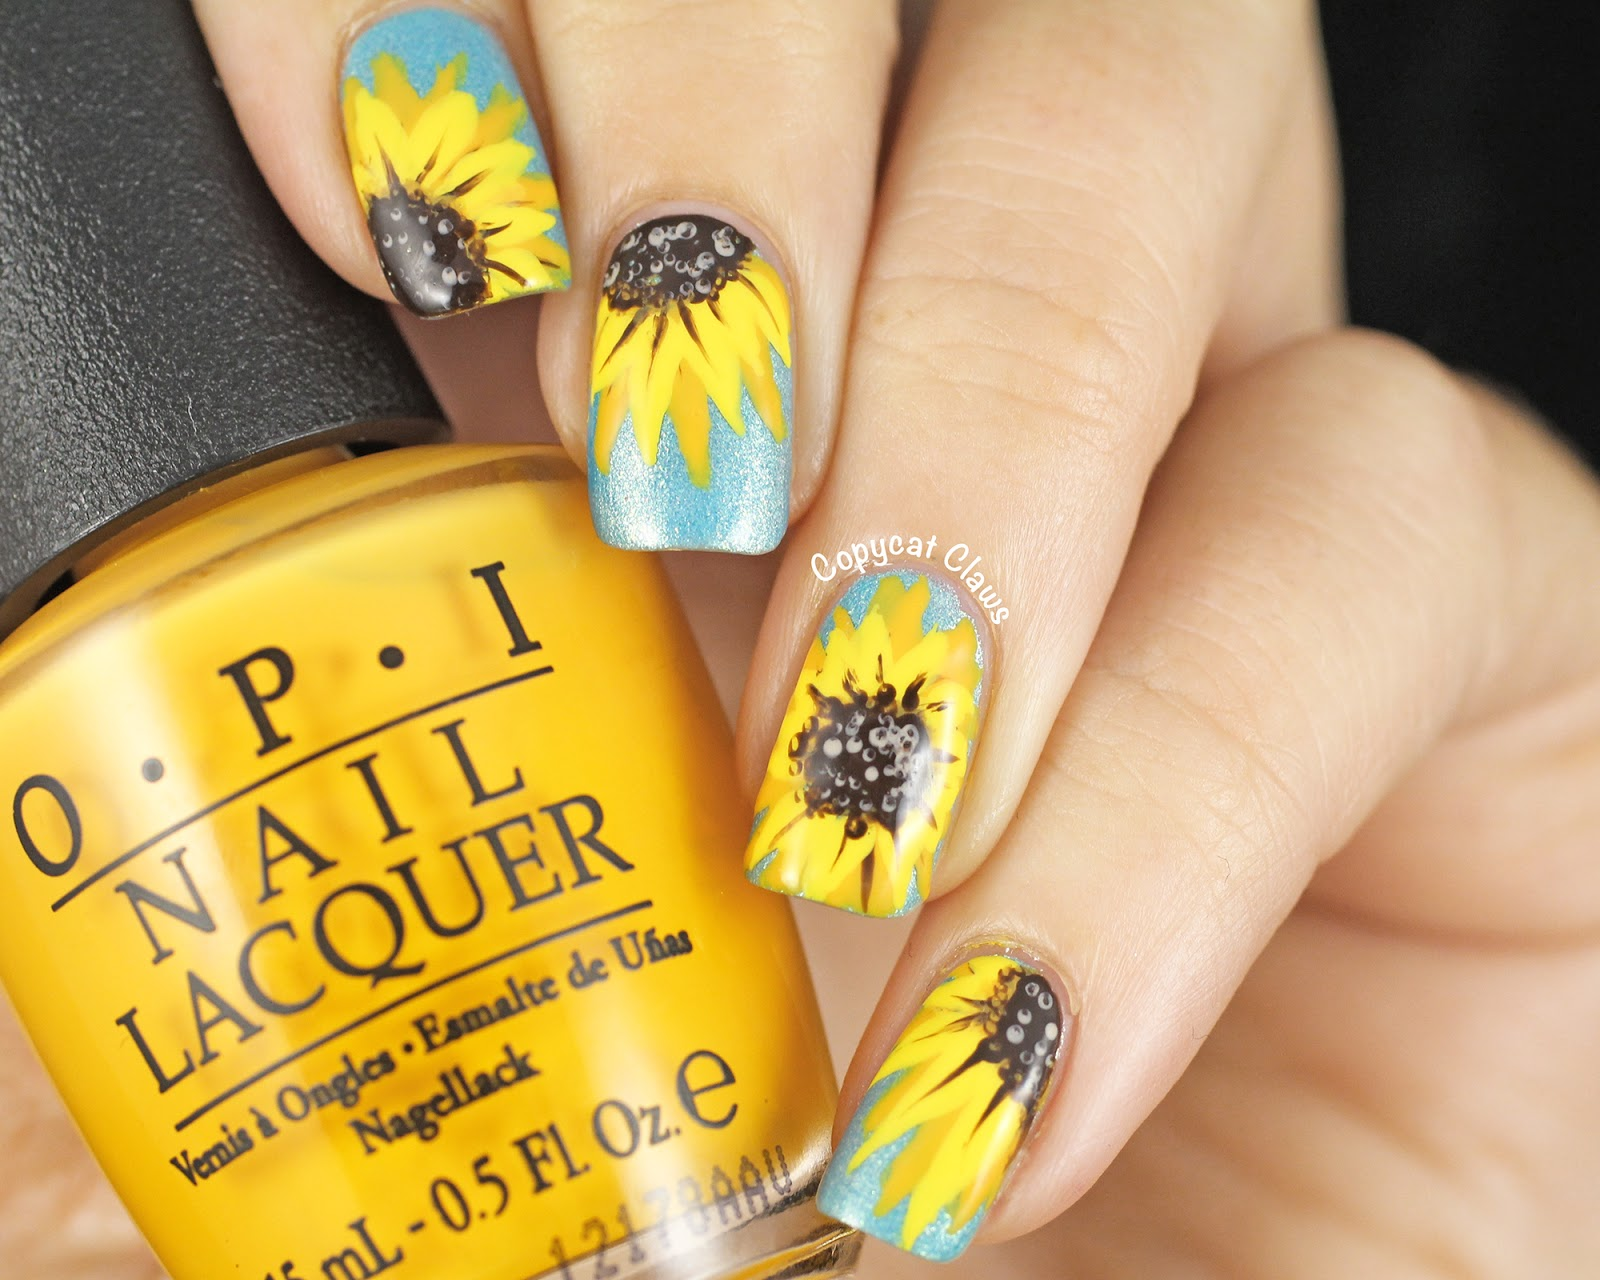 Copycat Claws: 31DC2014 Day 3 - Yellow Sunflower Nail Art